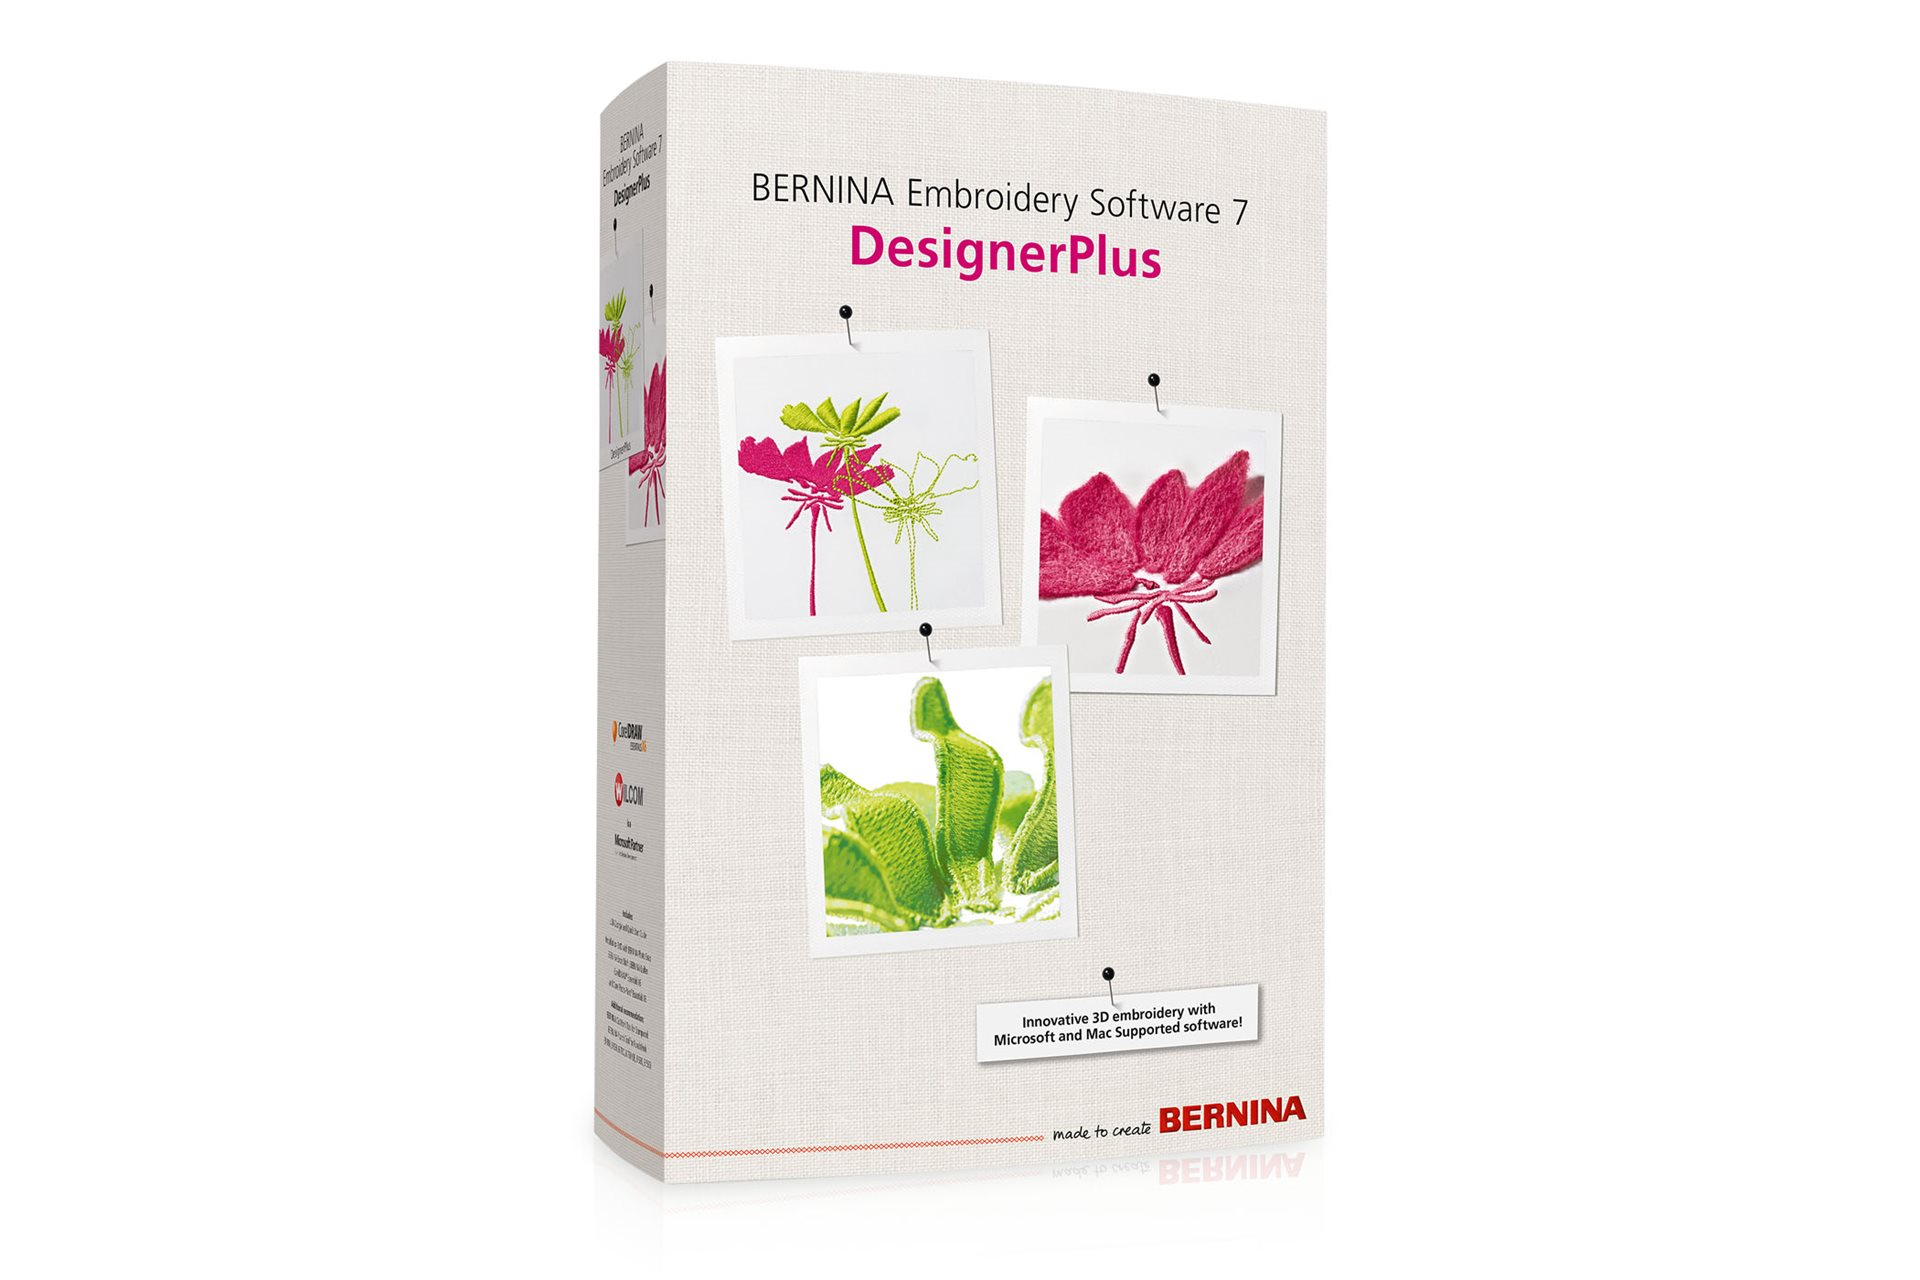 BERNINA Embroidery Software 7 – DesignerPlus